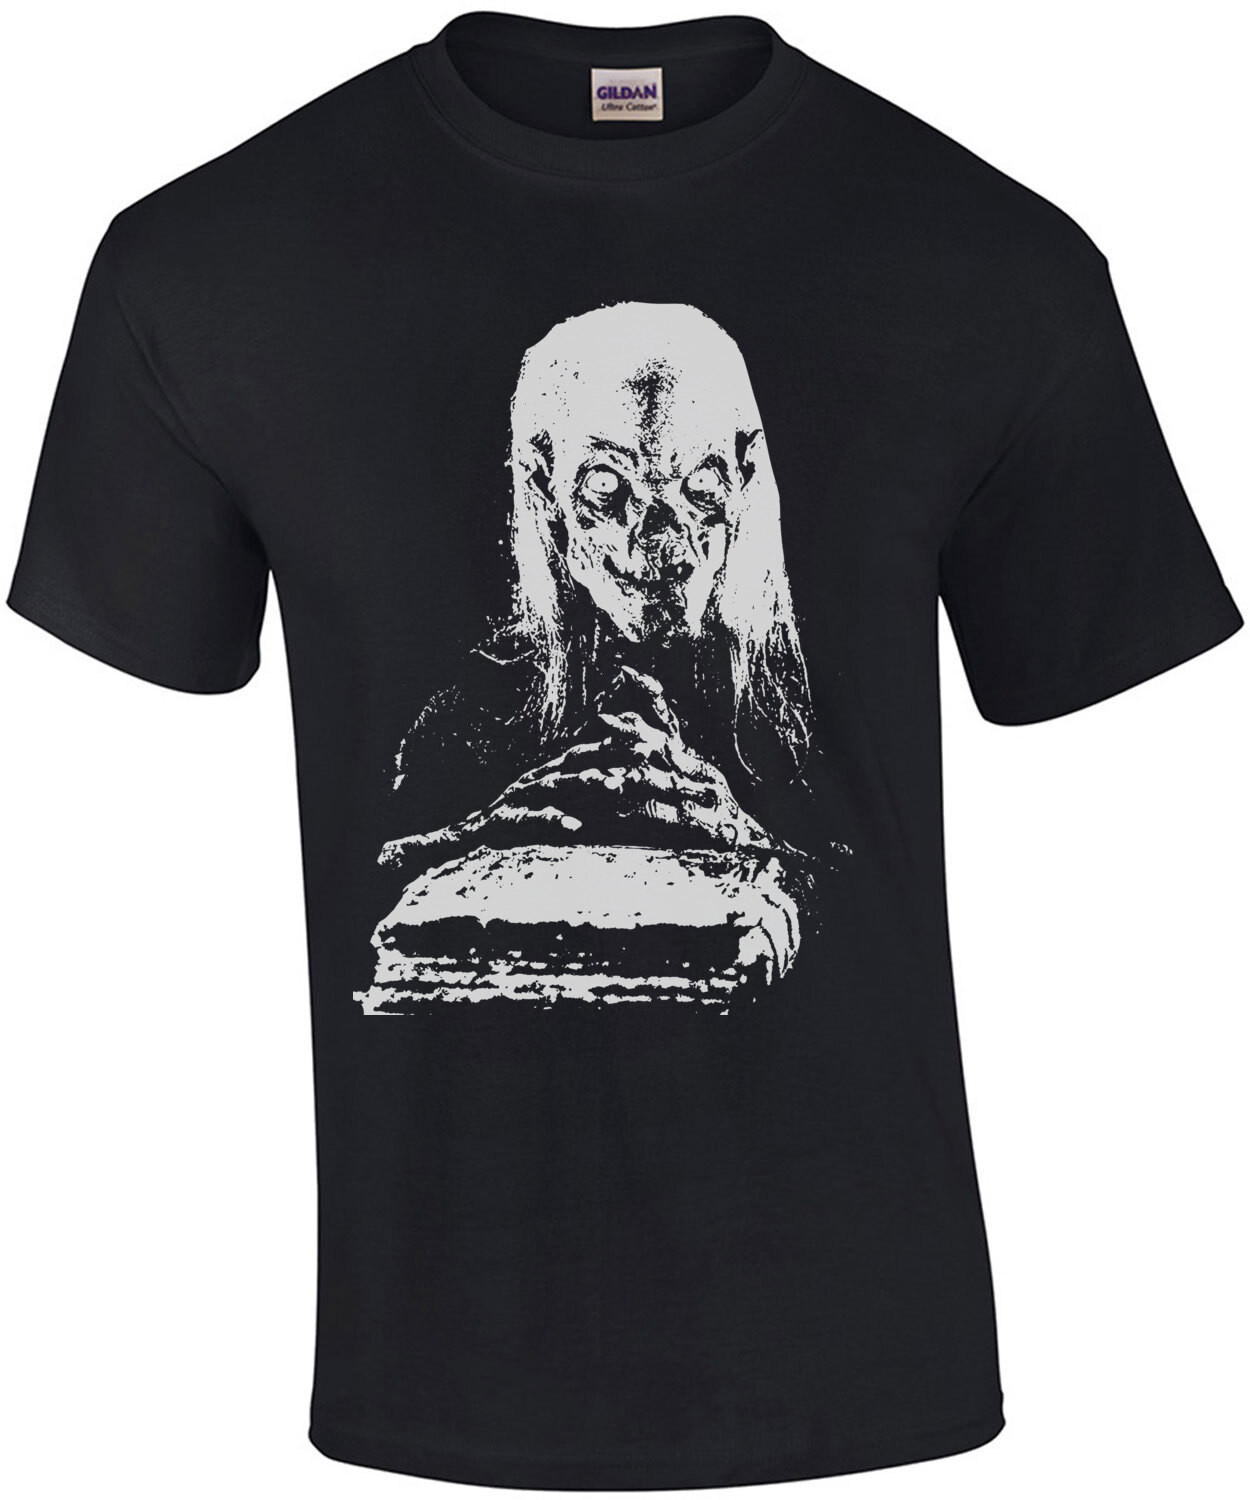 Tales From The Crypt - 80's T-Shirt